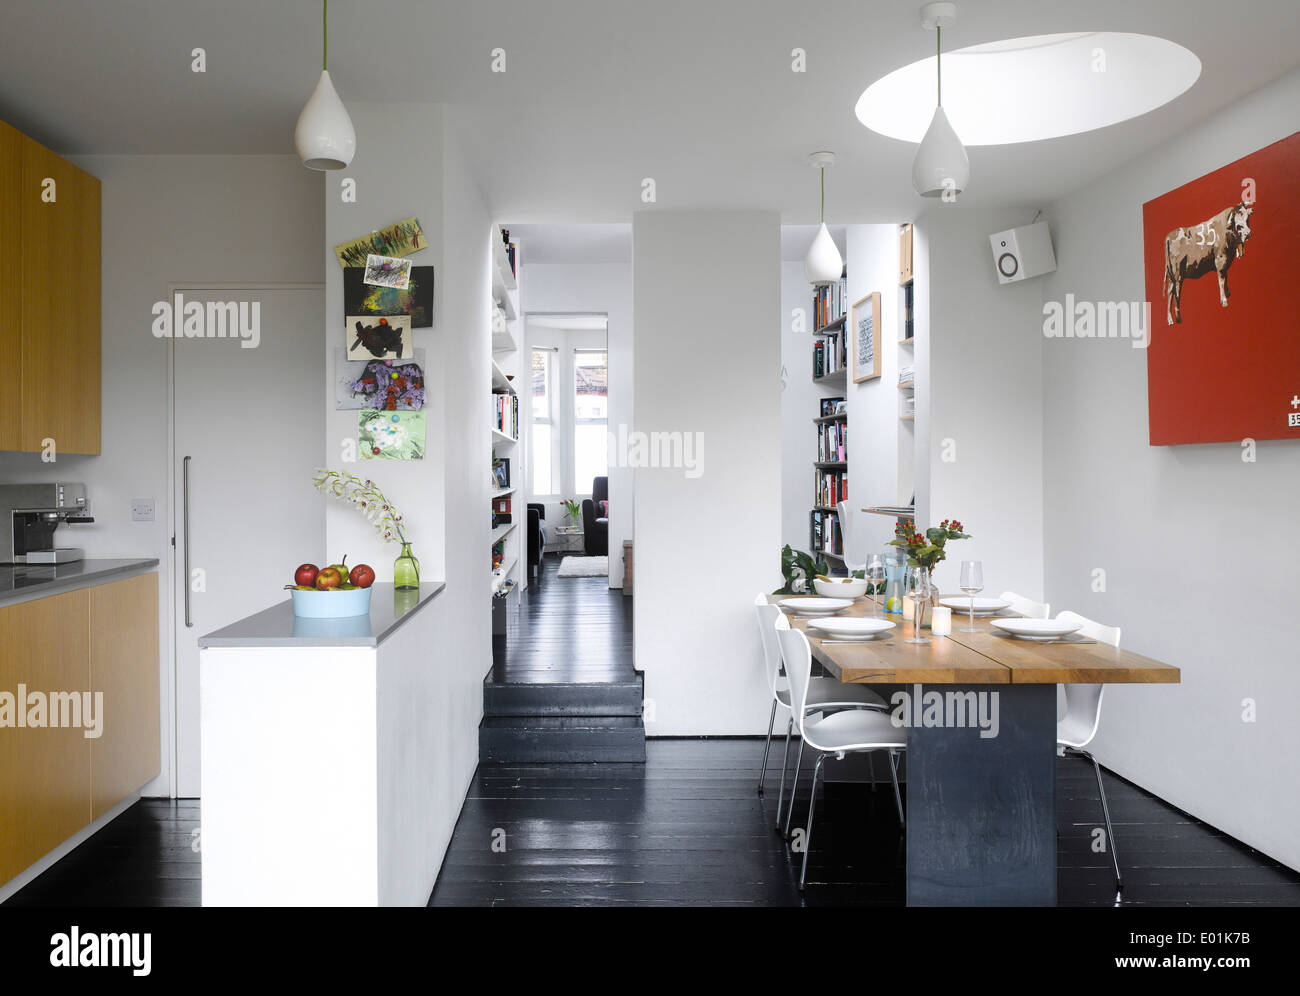 london victorian house hallway stock photos london victorian house hallway stock images alamy. Black Bedroom Furniture Sets. Home Design Ideas